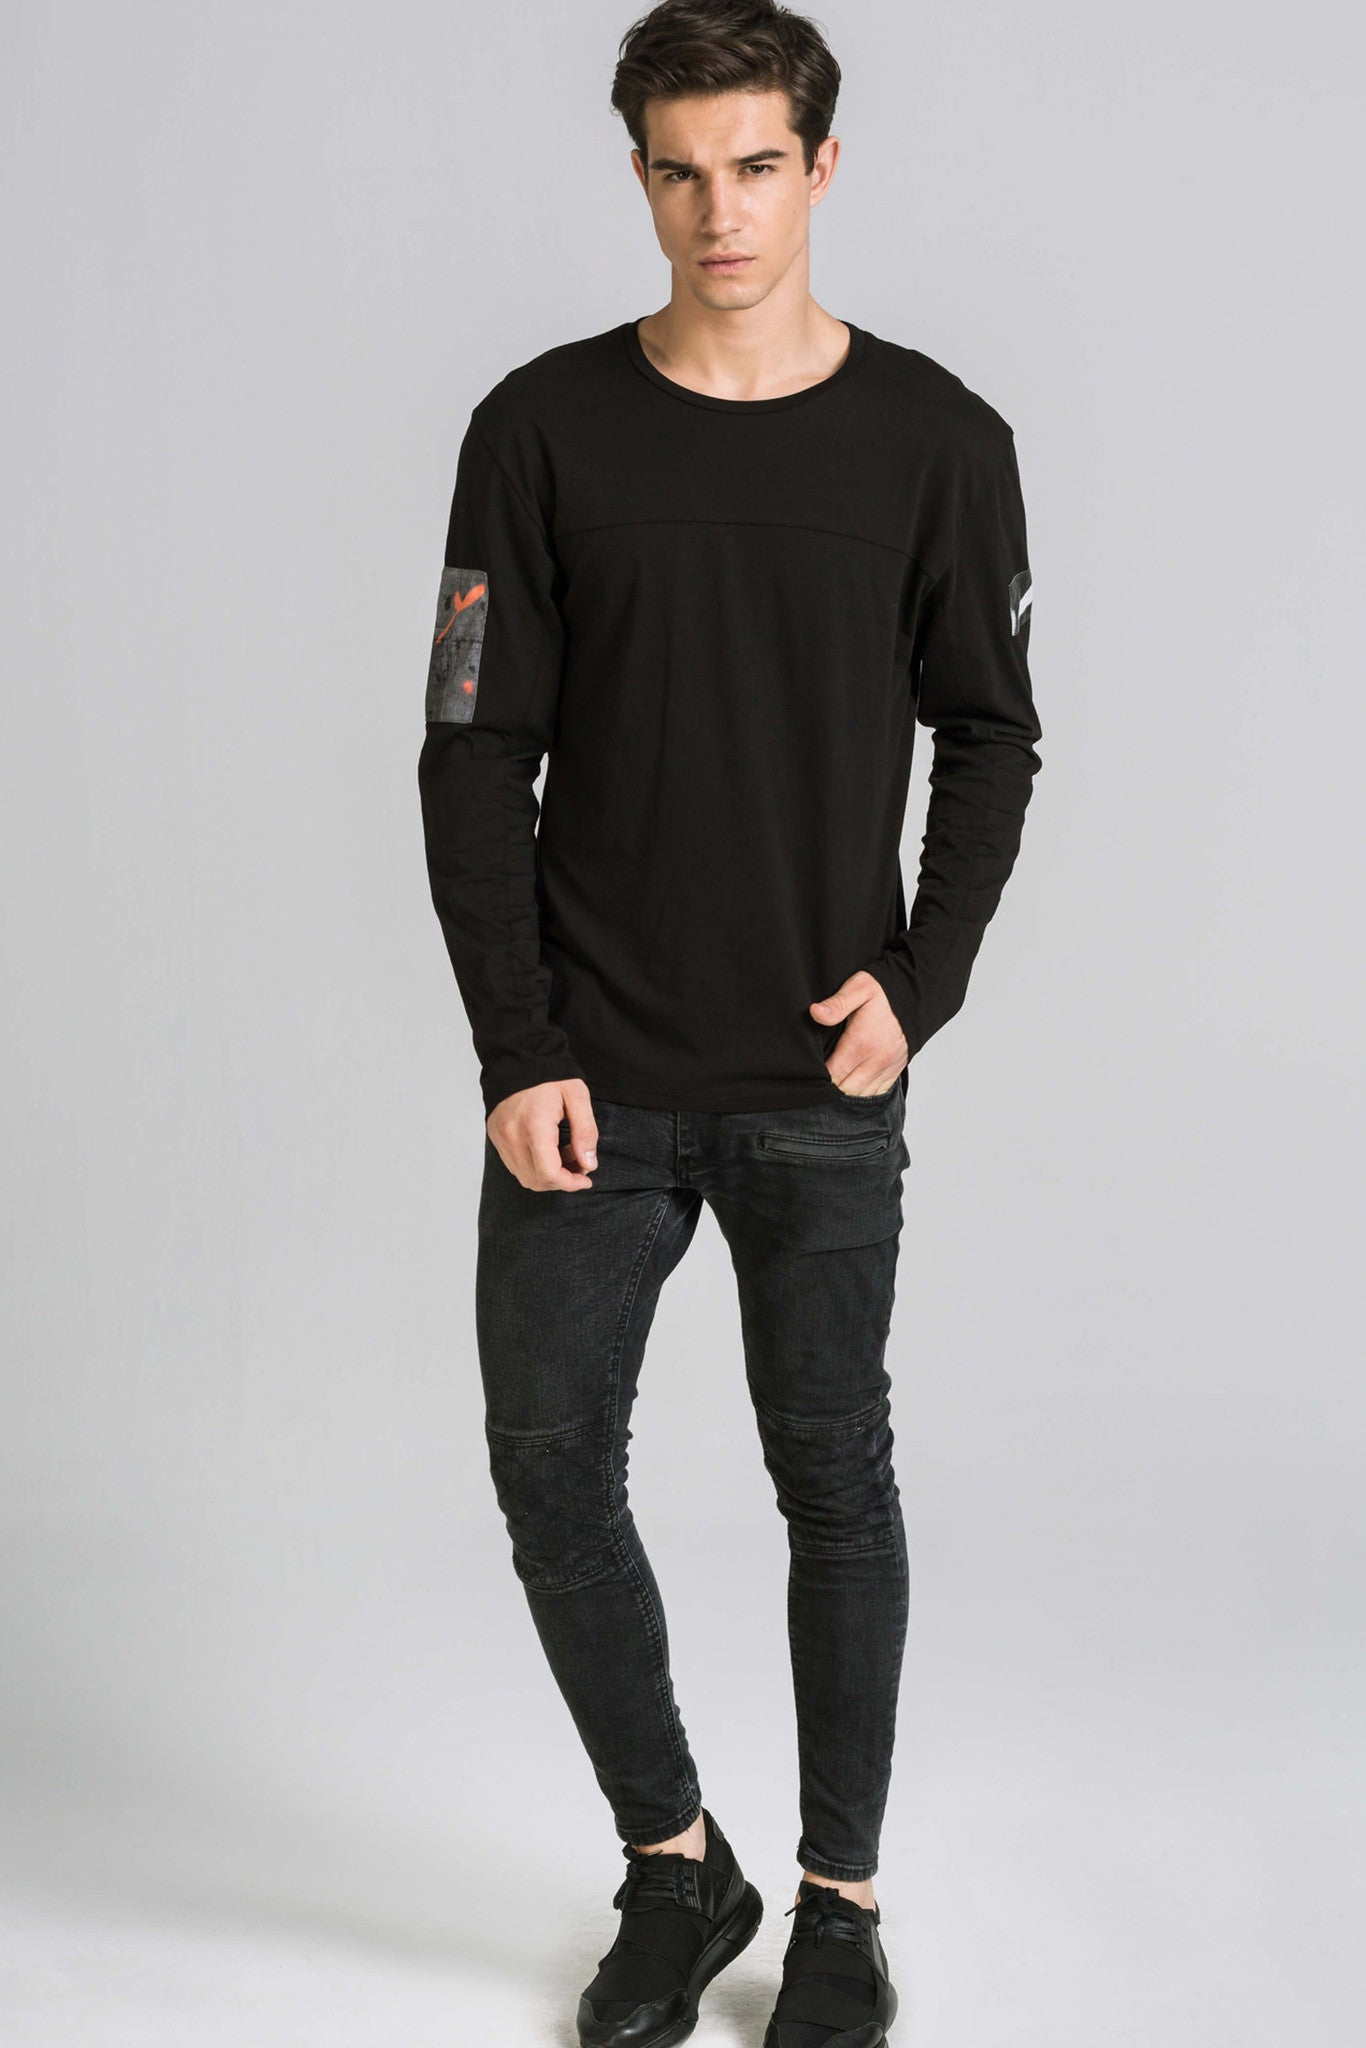 EVERY MORNING LS BLACK TEE